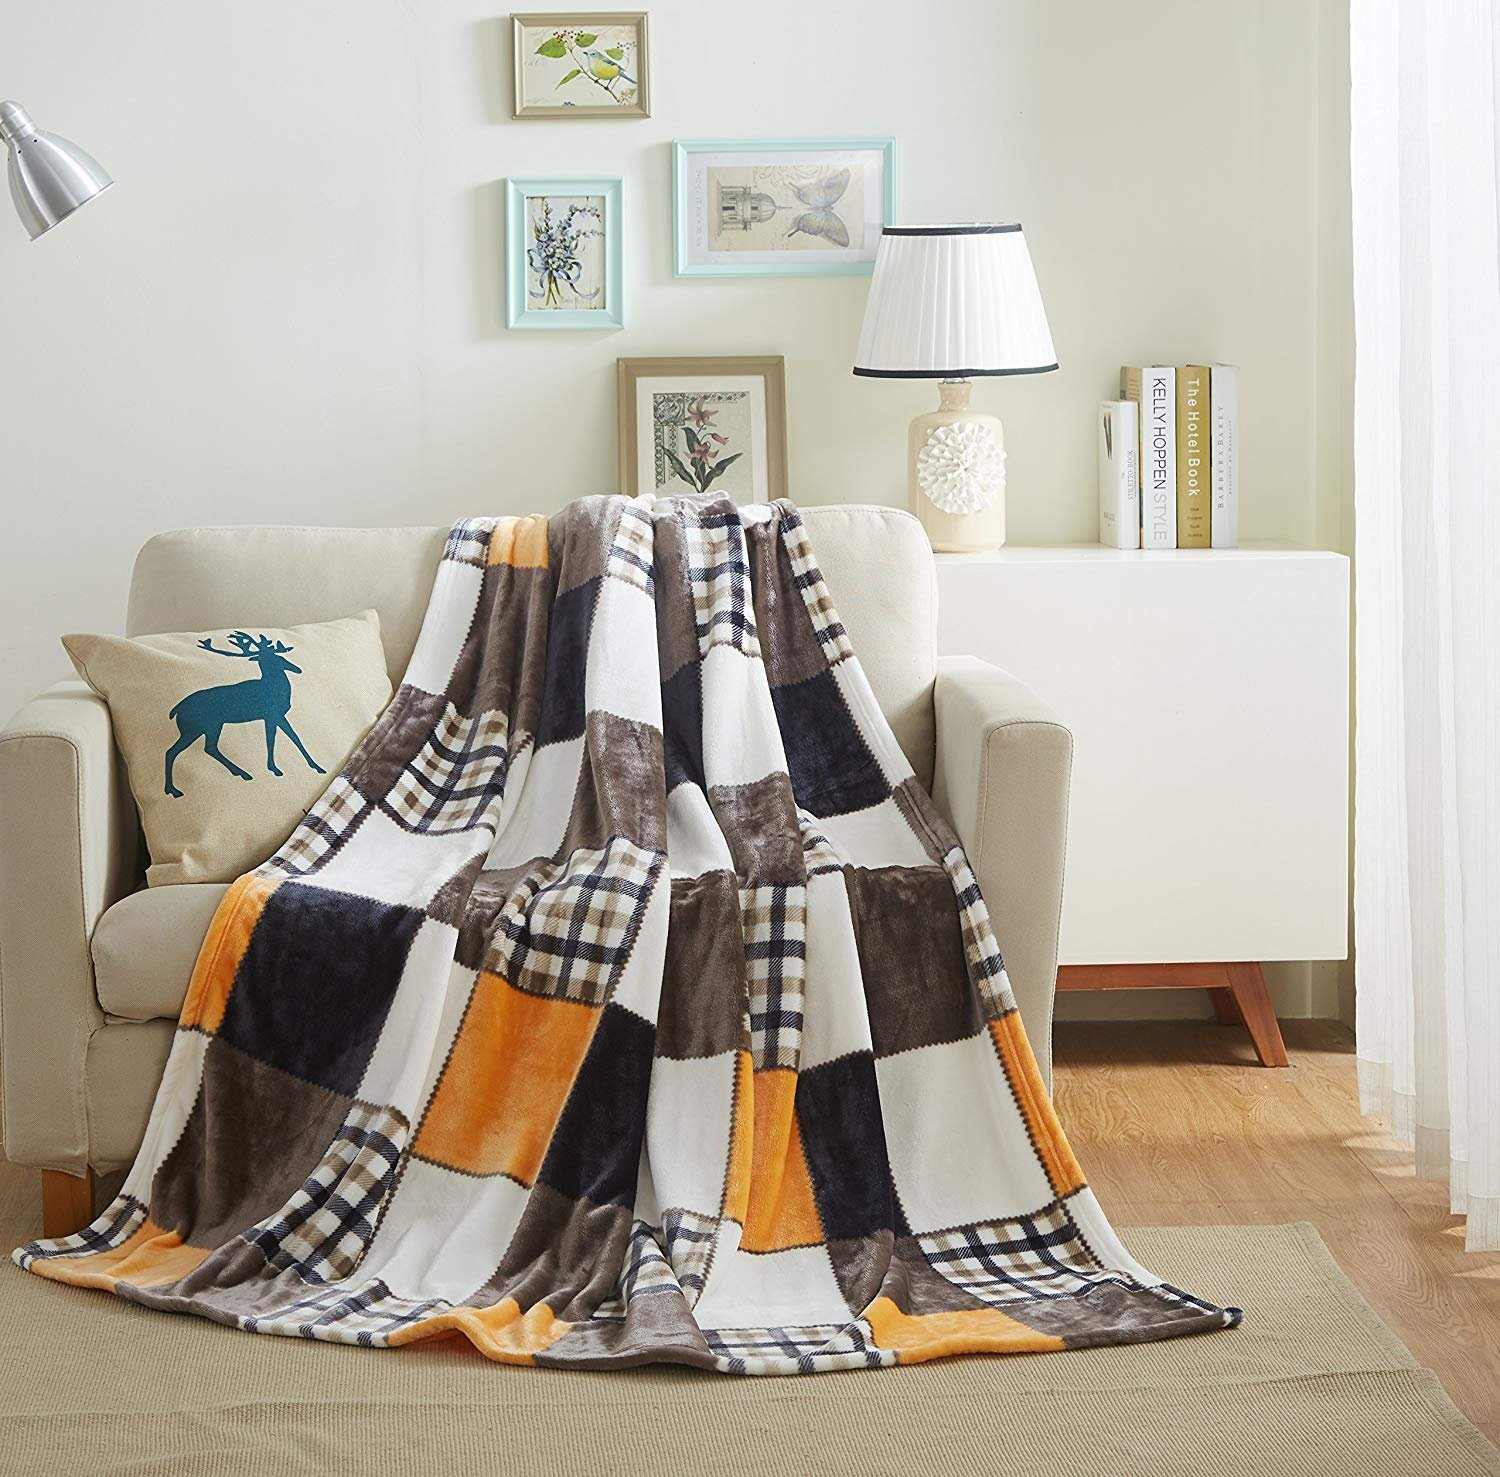 Tache Orange Fall Farmhouse Super Soft Warm Lightweight Plaid Fleece Patchwork Decorative Throw Blanket for Couch, Sofa, Lap - 50x60 by Tache Home Fashion